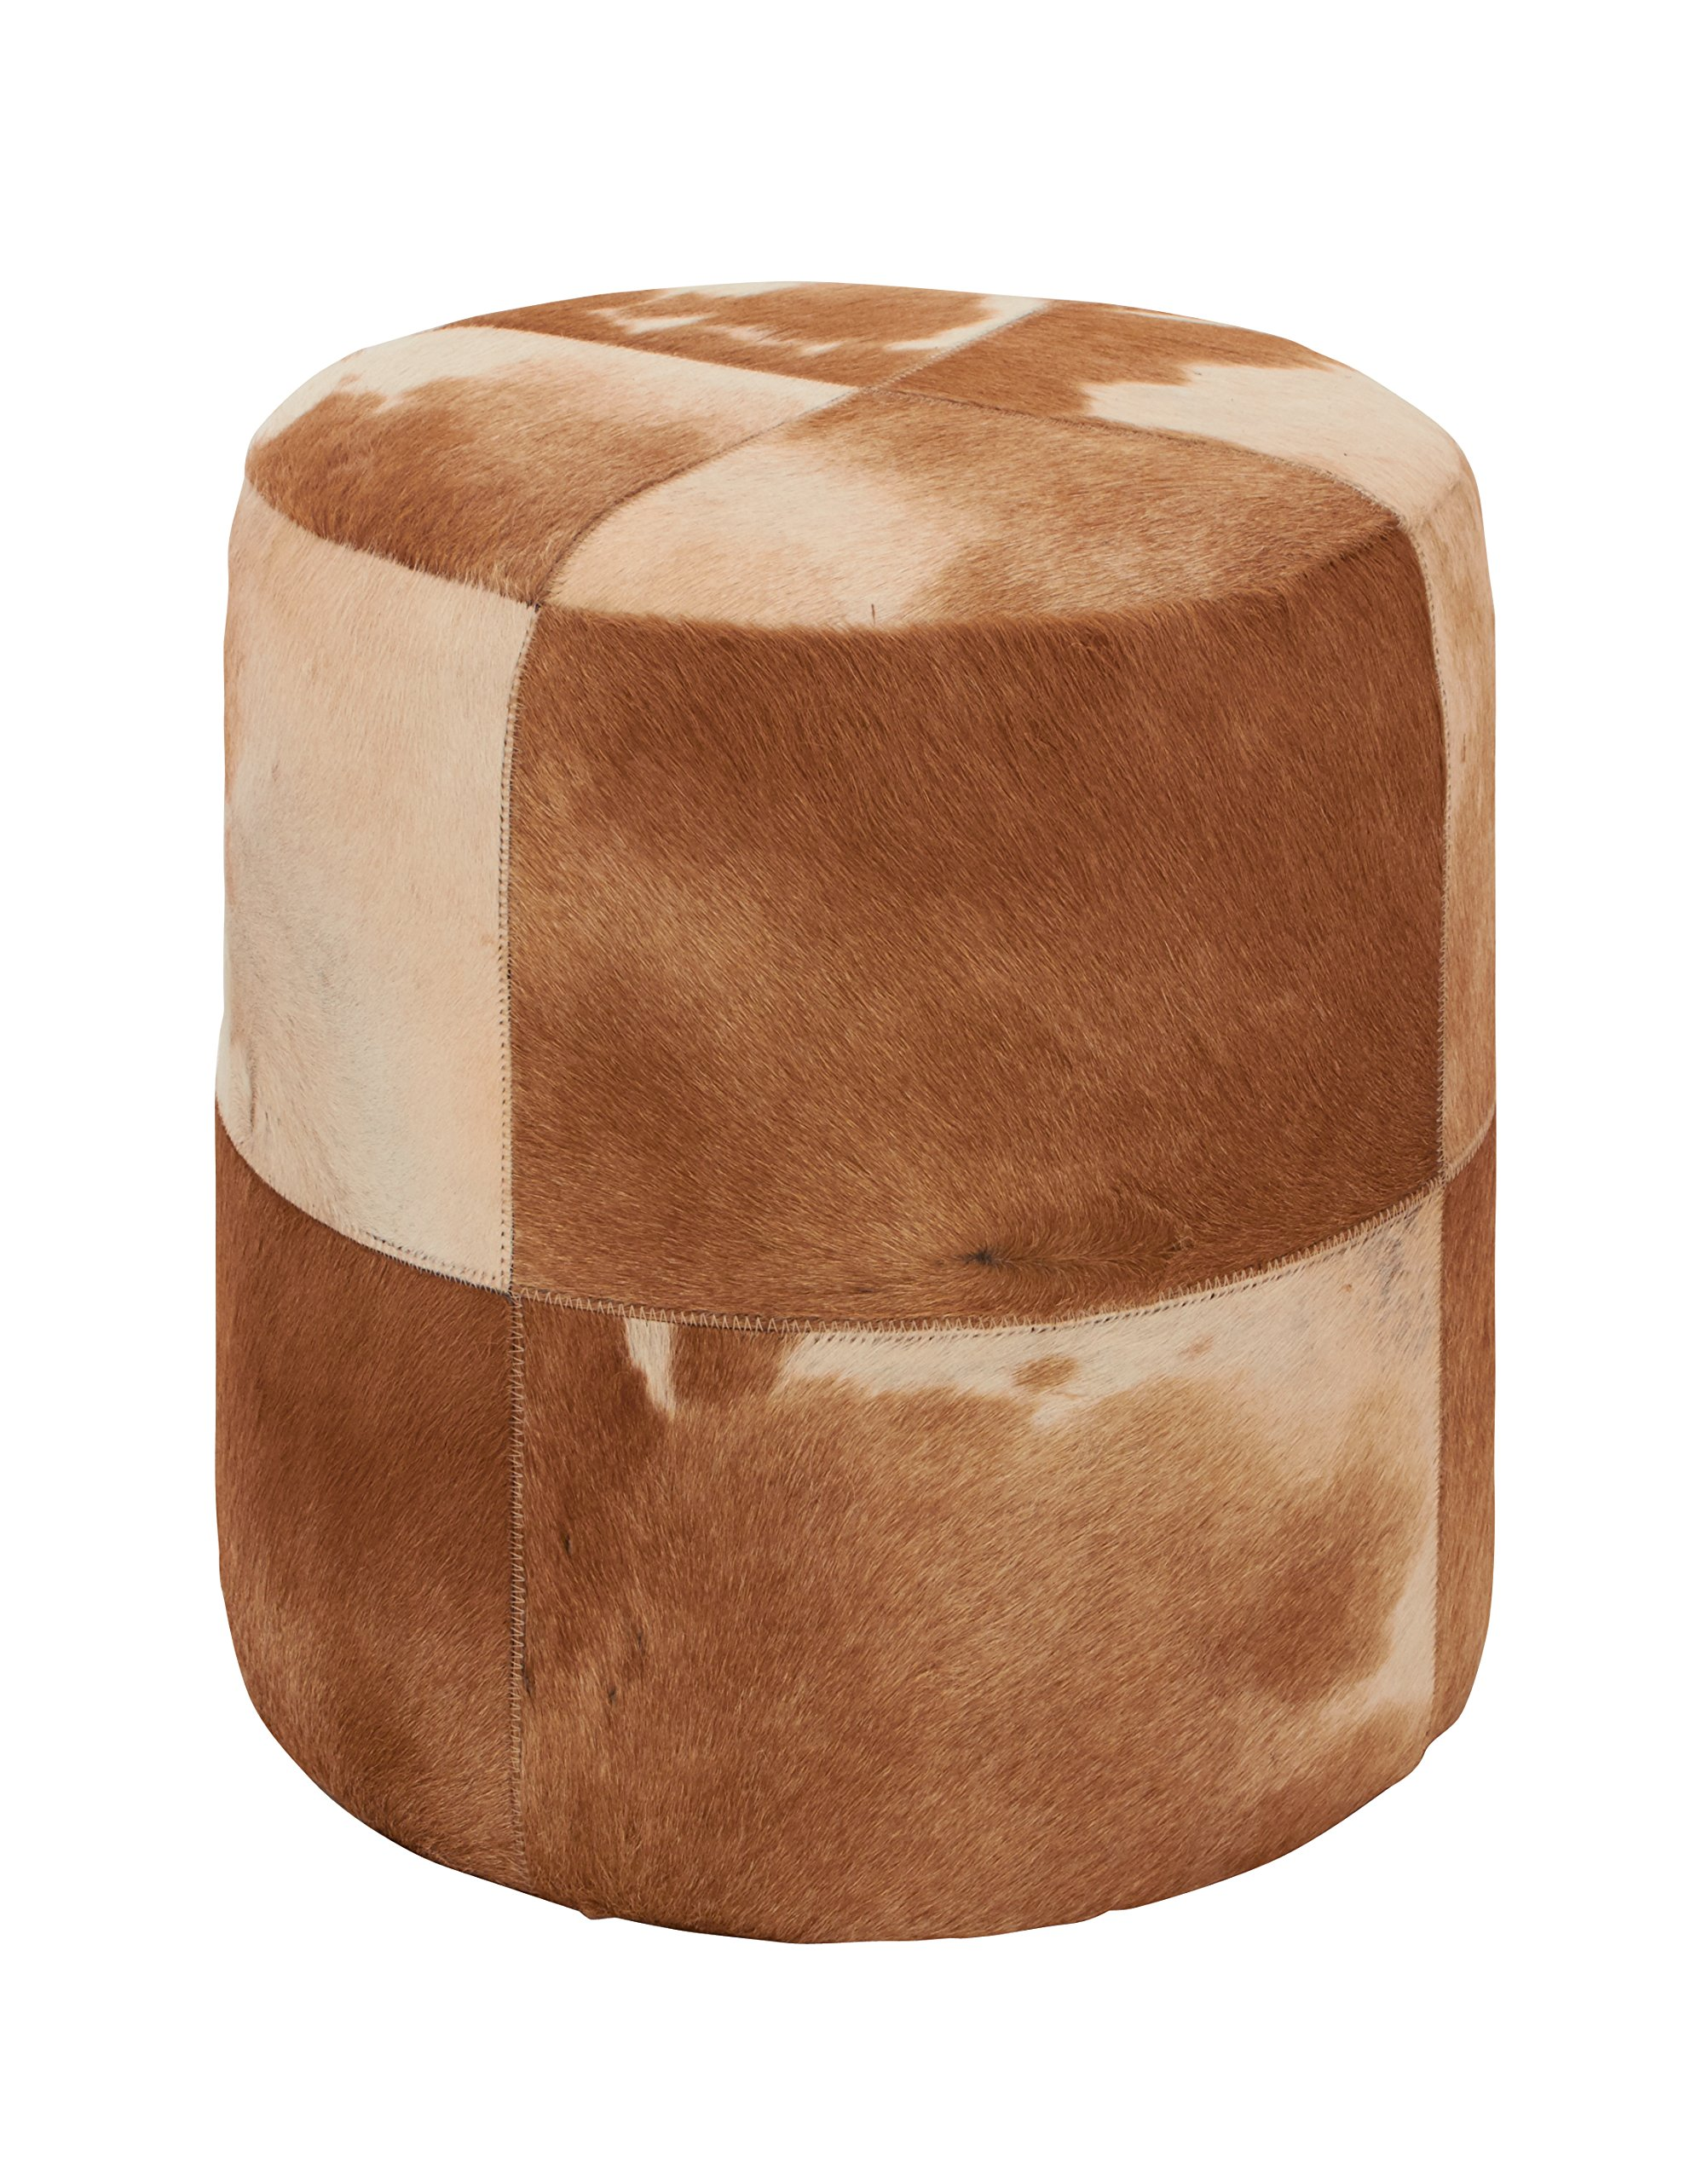 Deco 79 95921 Wood Leather Hide Ottoman, 16'' x 16'', Brown